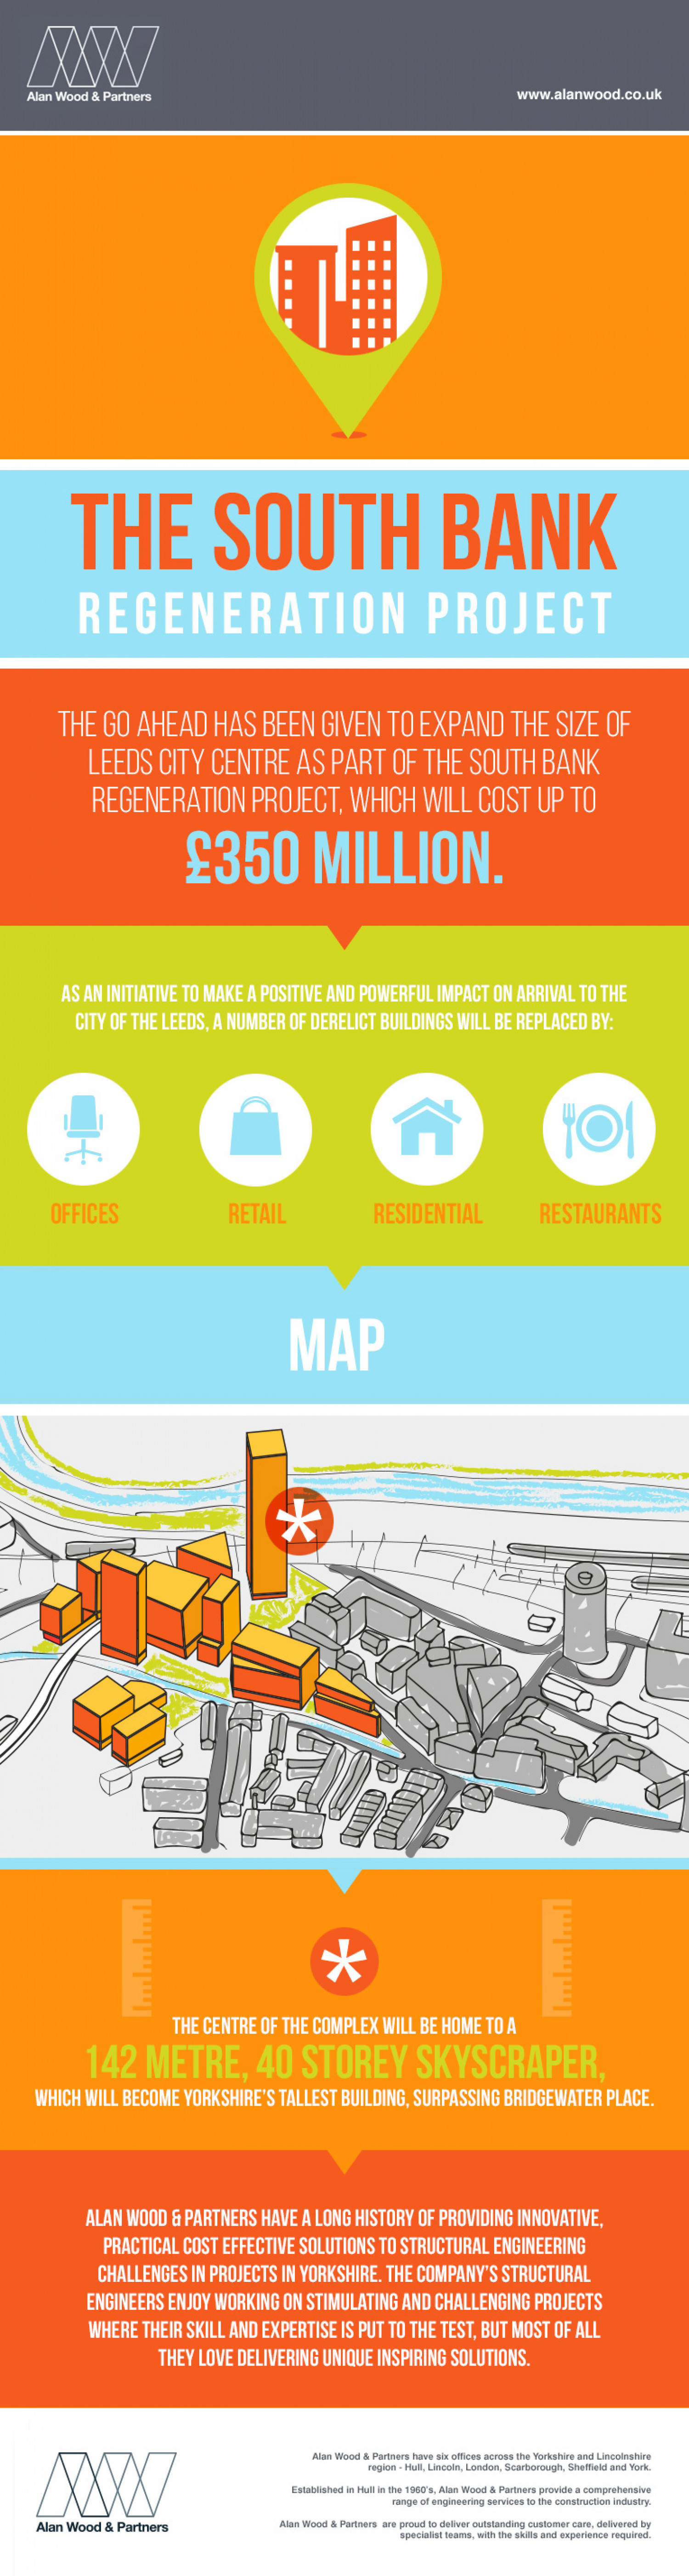 The South Bank Regeneration Project Infographic